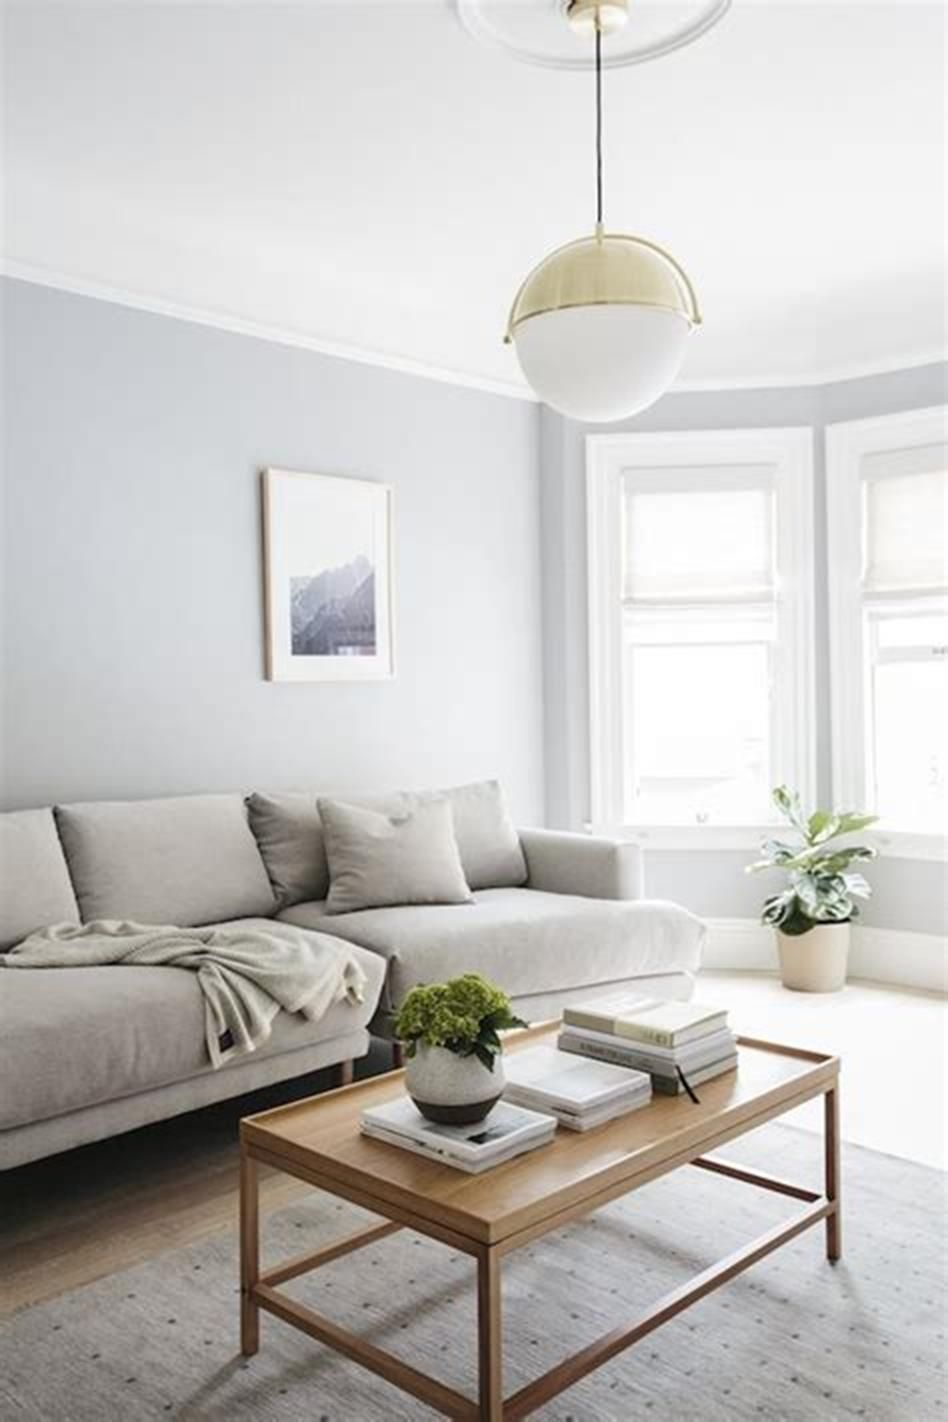 45 Simple Living Room Decorating Ideas On A Budget 2019 Comedecor Minimalist Living Room Decor Minimalist Living Room Design Simple Living Room